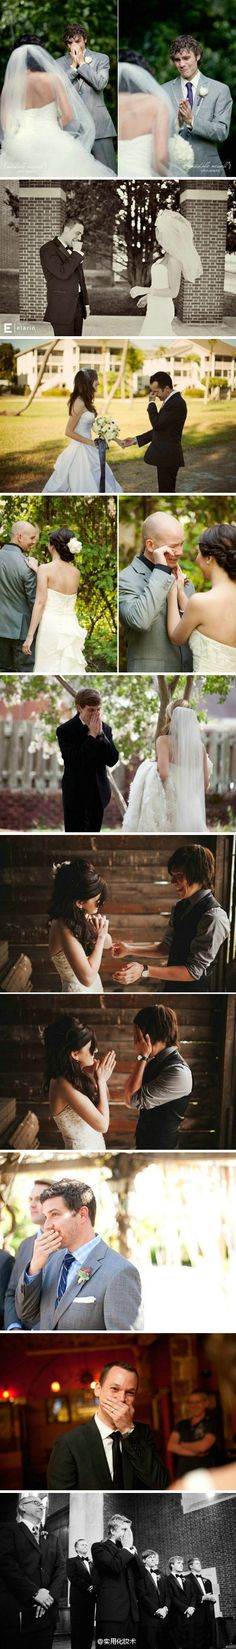 the moment when the groom sees the bride- MUST HAVE PICTURE!!! I will bawl my eyes out if my fiancé cries! :'(